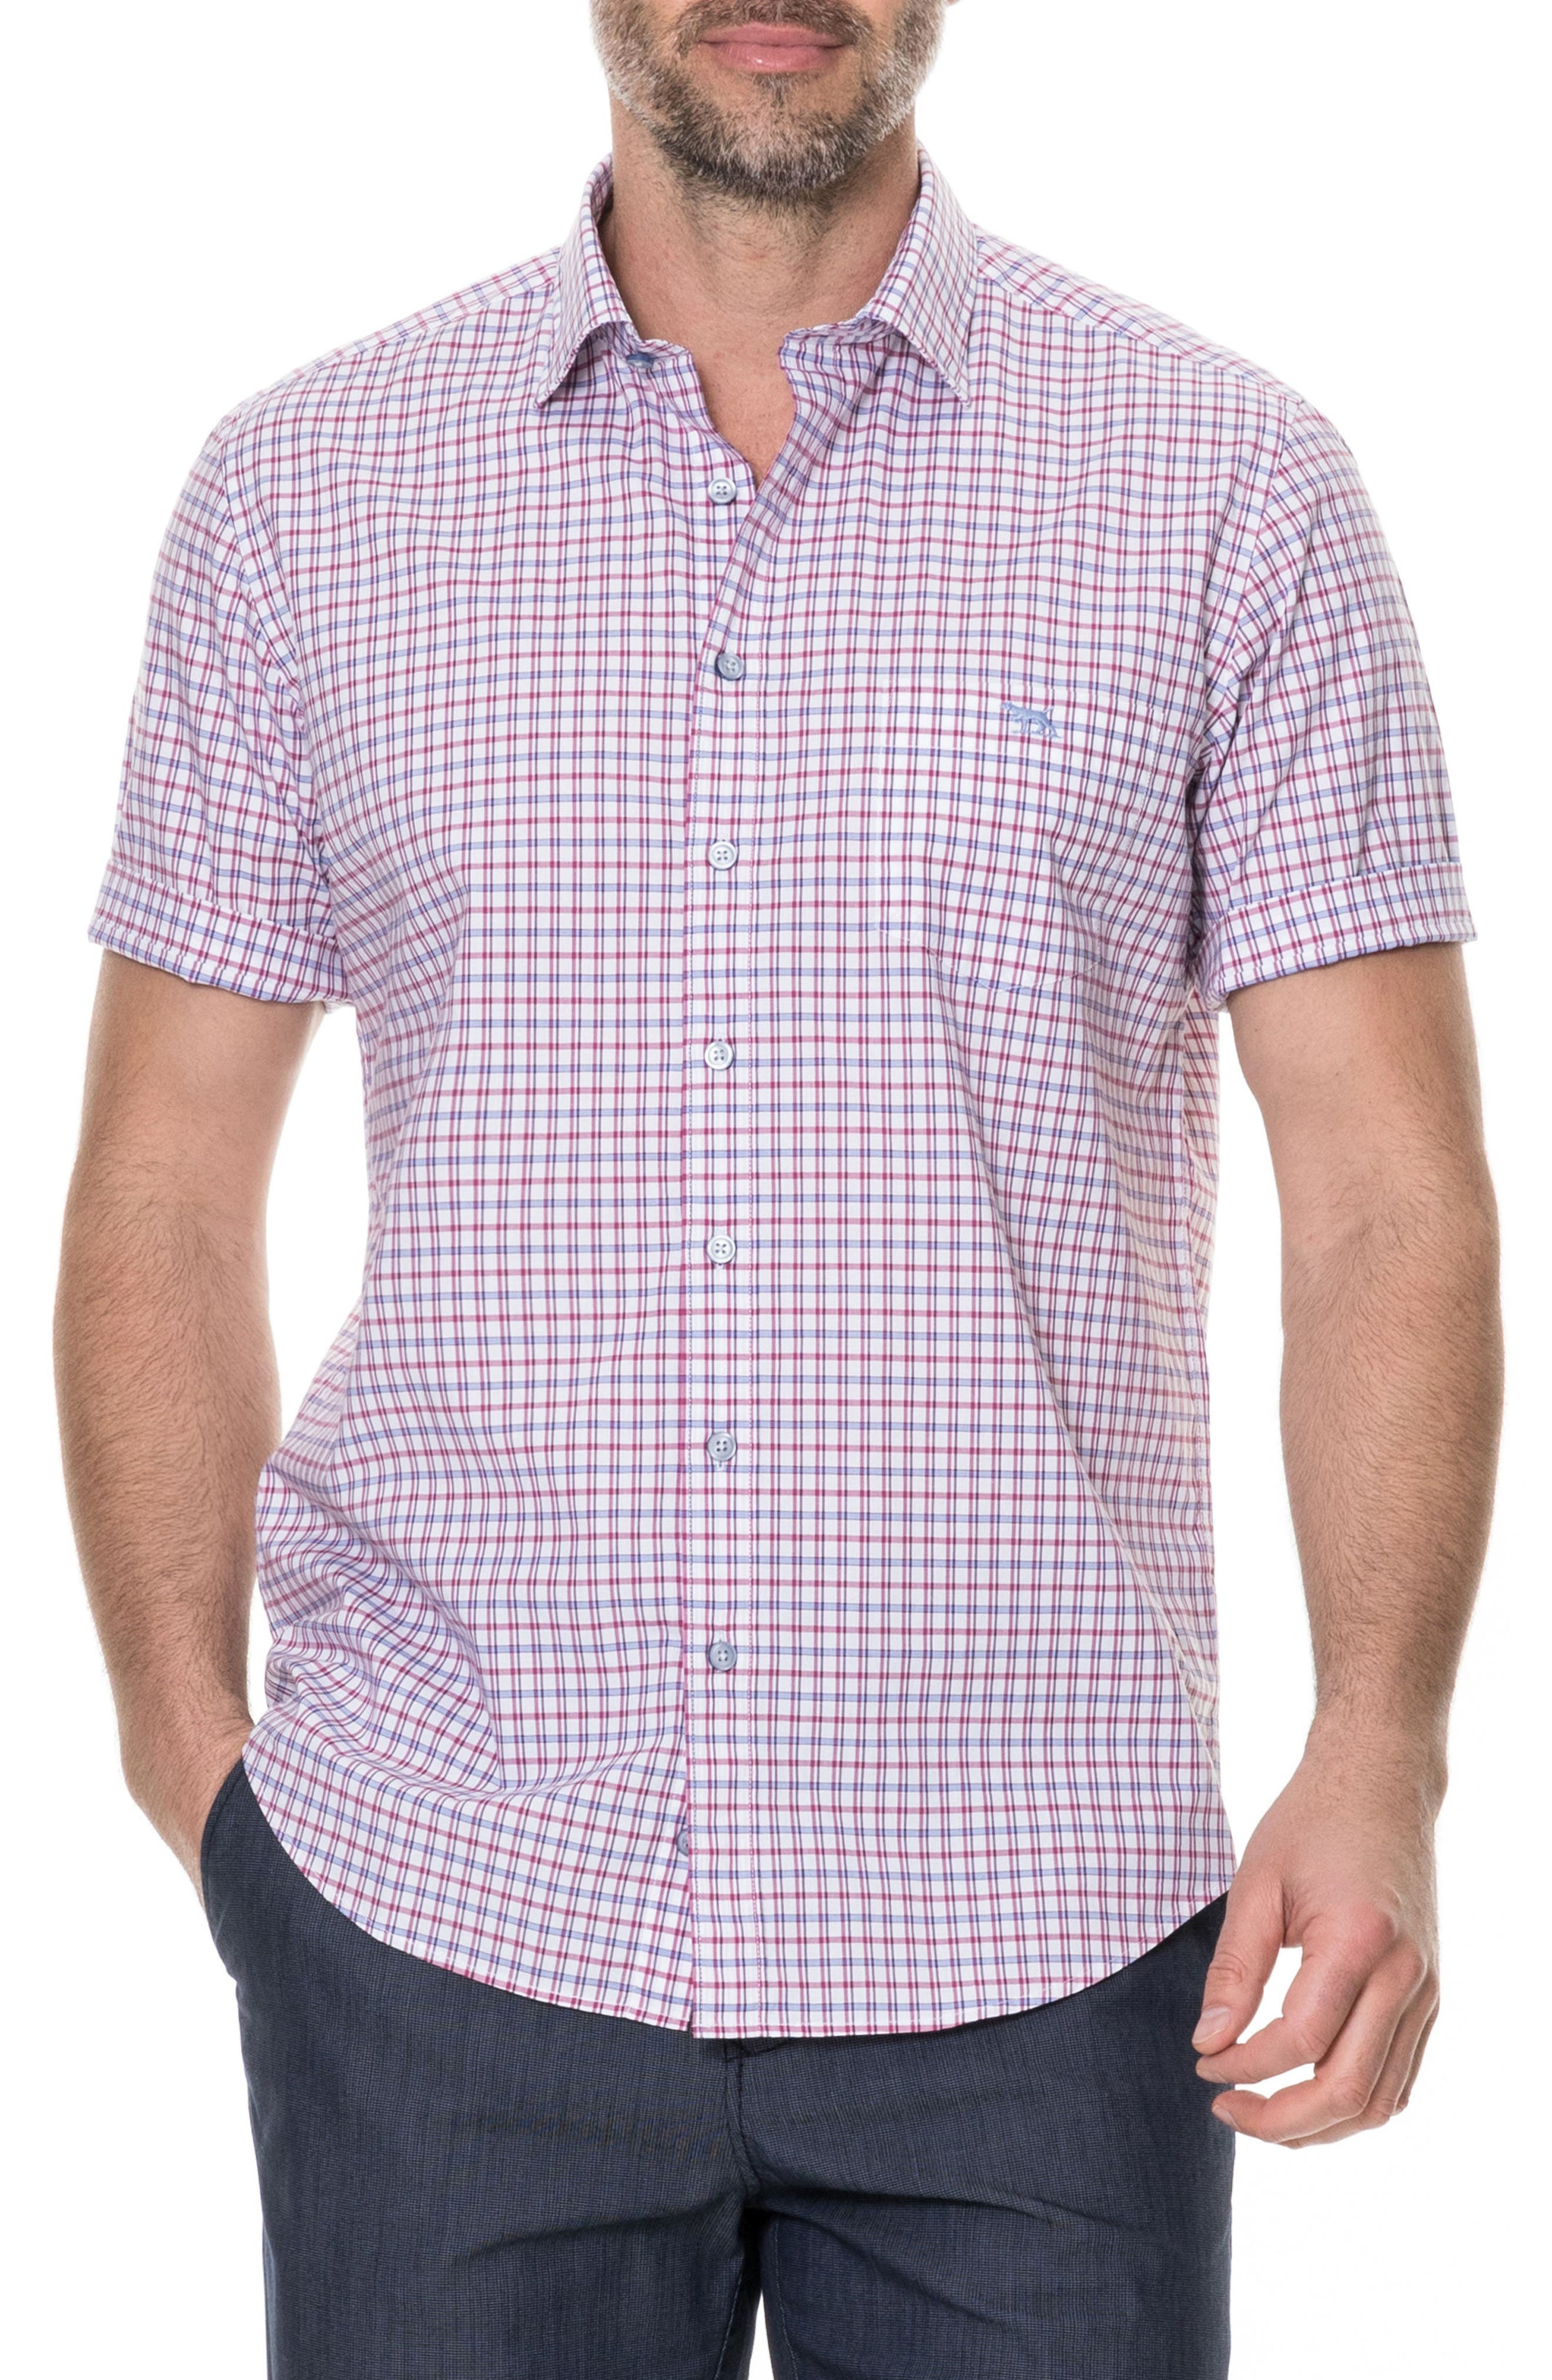 Waterford Regular Fit Sport Shirt,                             Main thumbnail 1, color,                             Mulberry